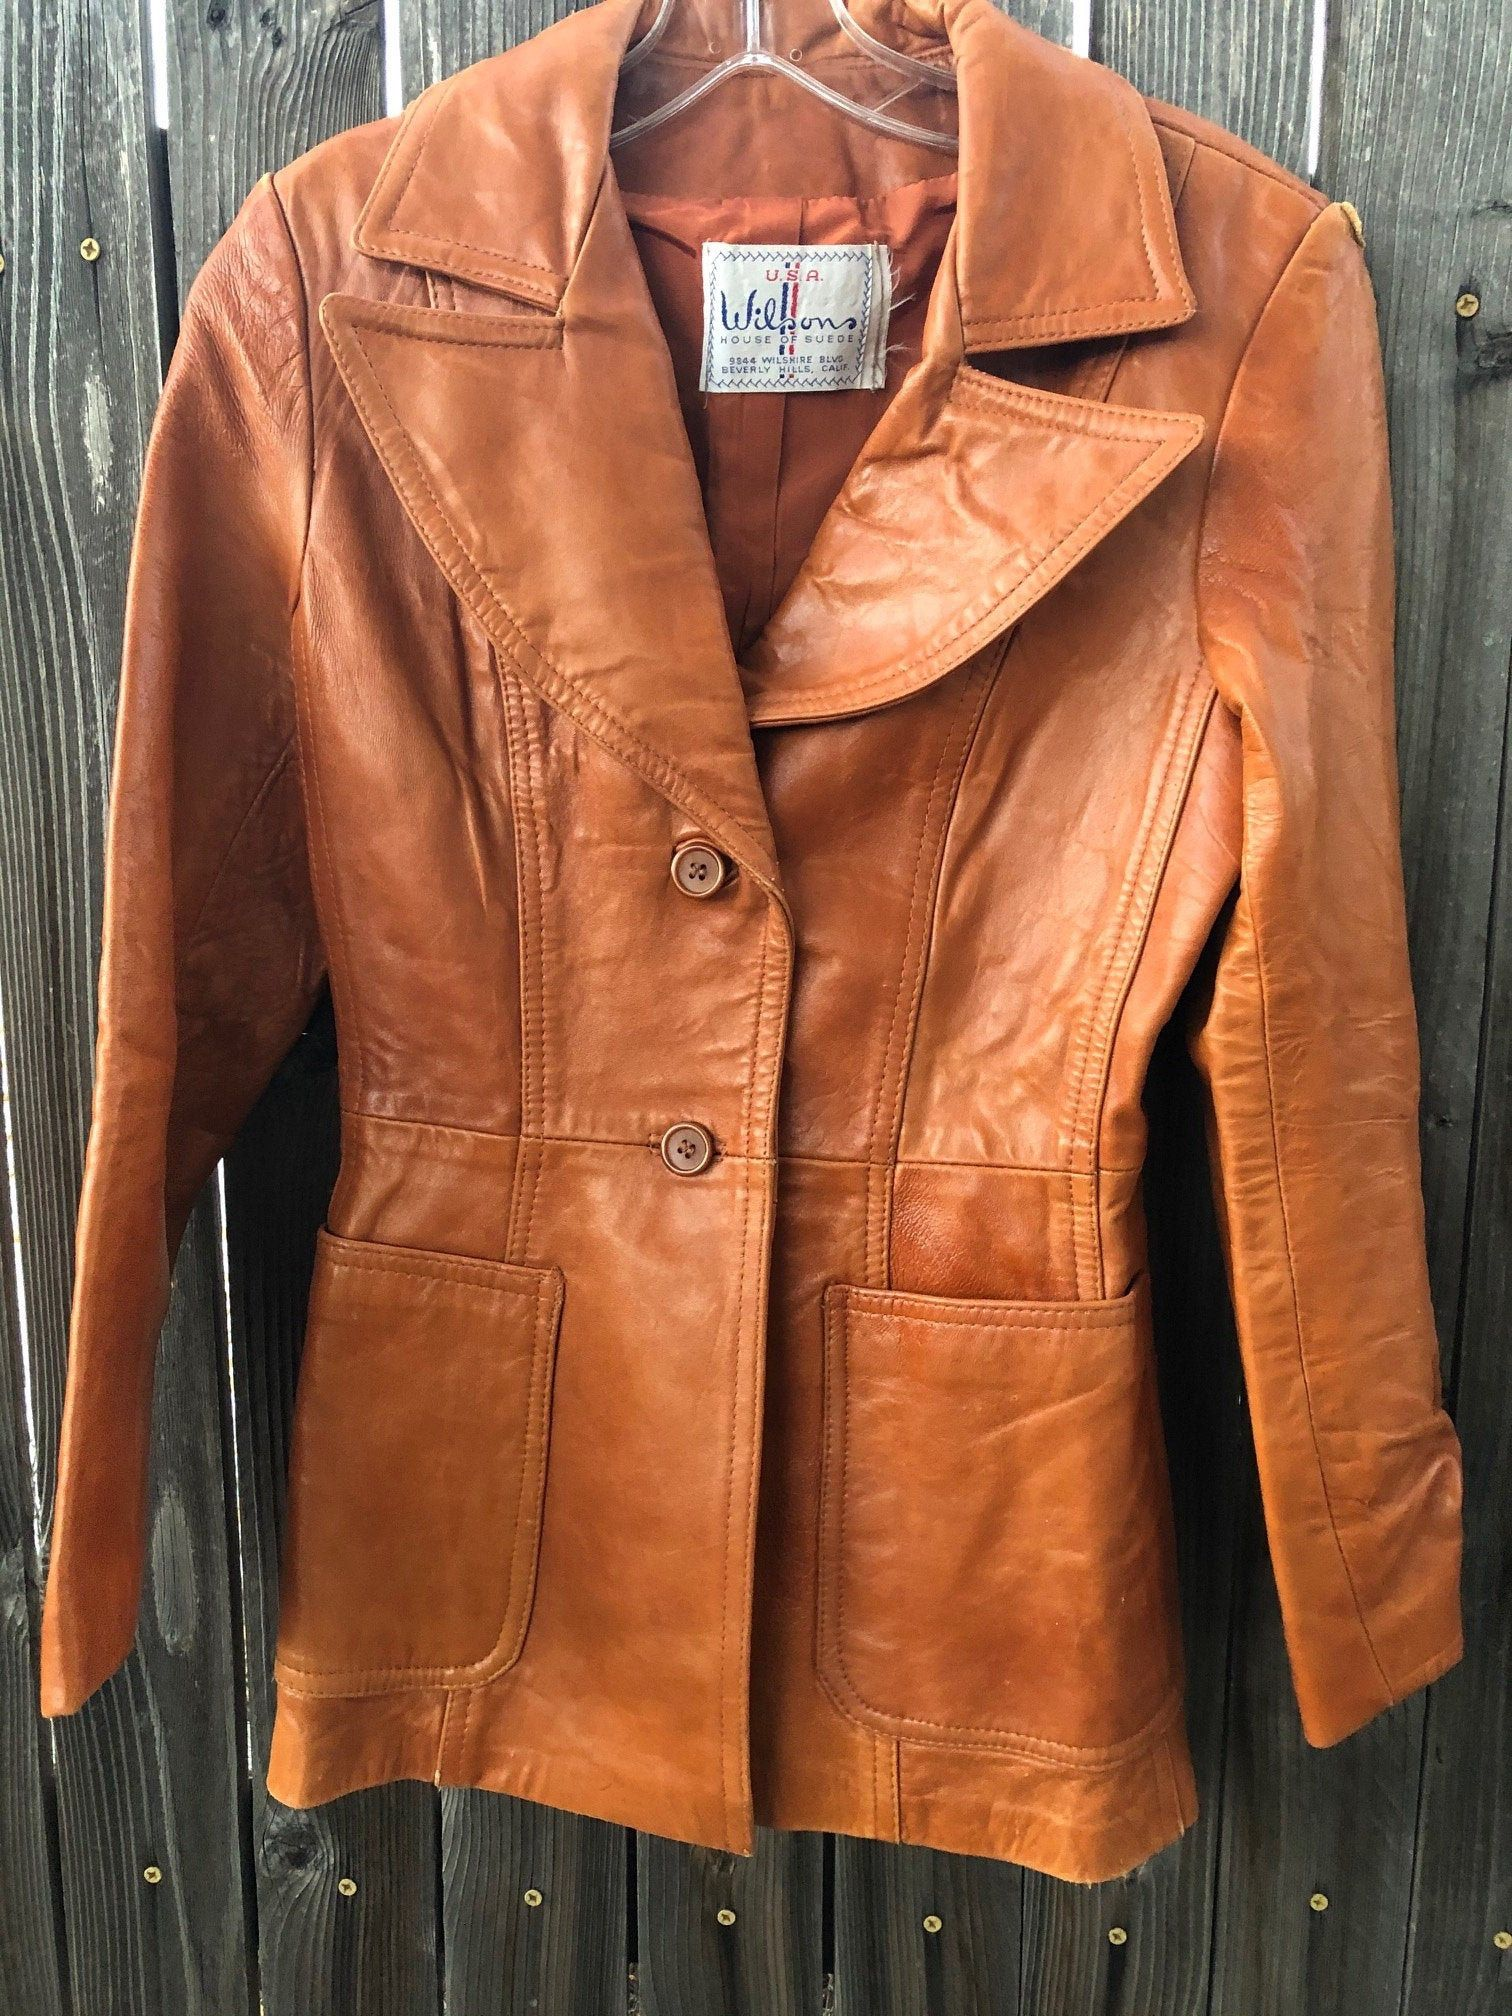 Vintage American Leather Jacket 1970s Light Brown Leather Etsy Leather Jacket American Leather Brown Leather Coat [ 2016 x 1512 Pixel ]